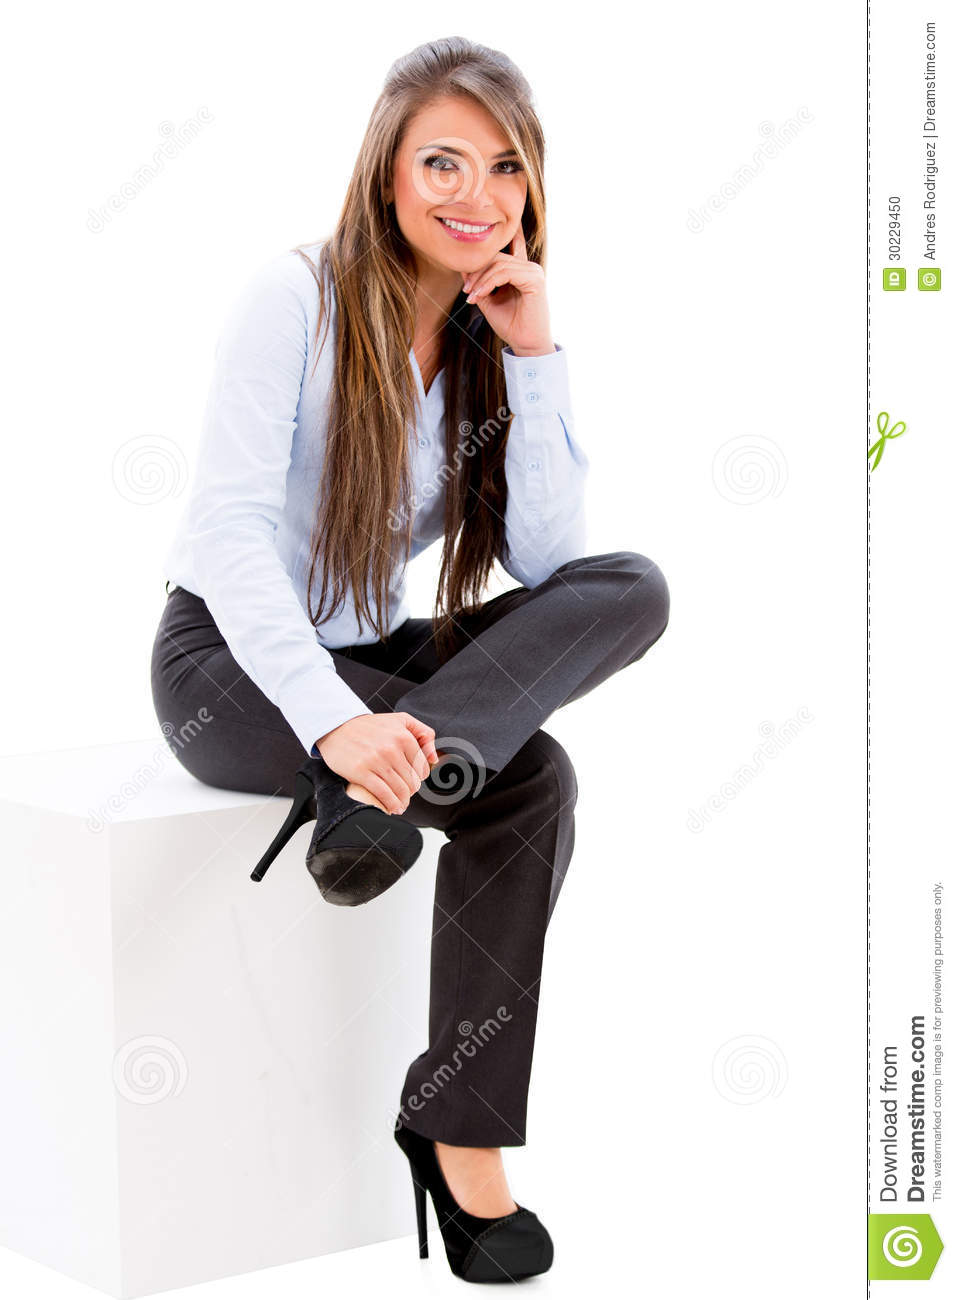 Business woman sitting on a box - isolated over a white background.